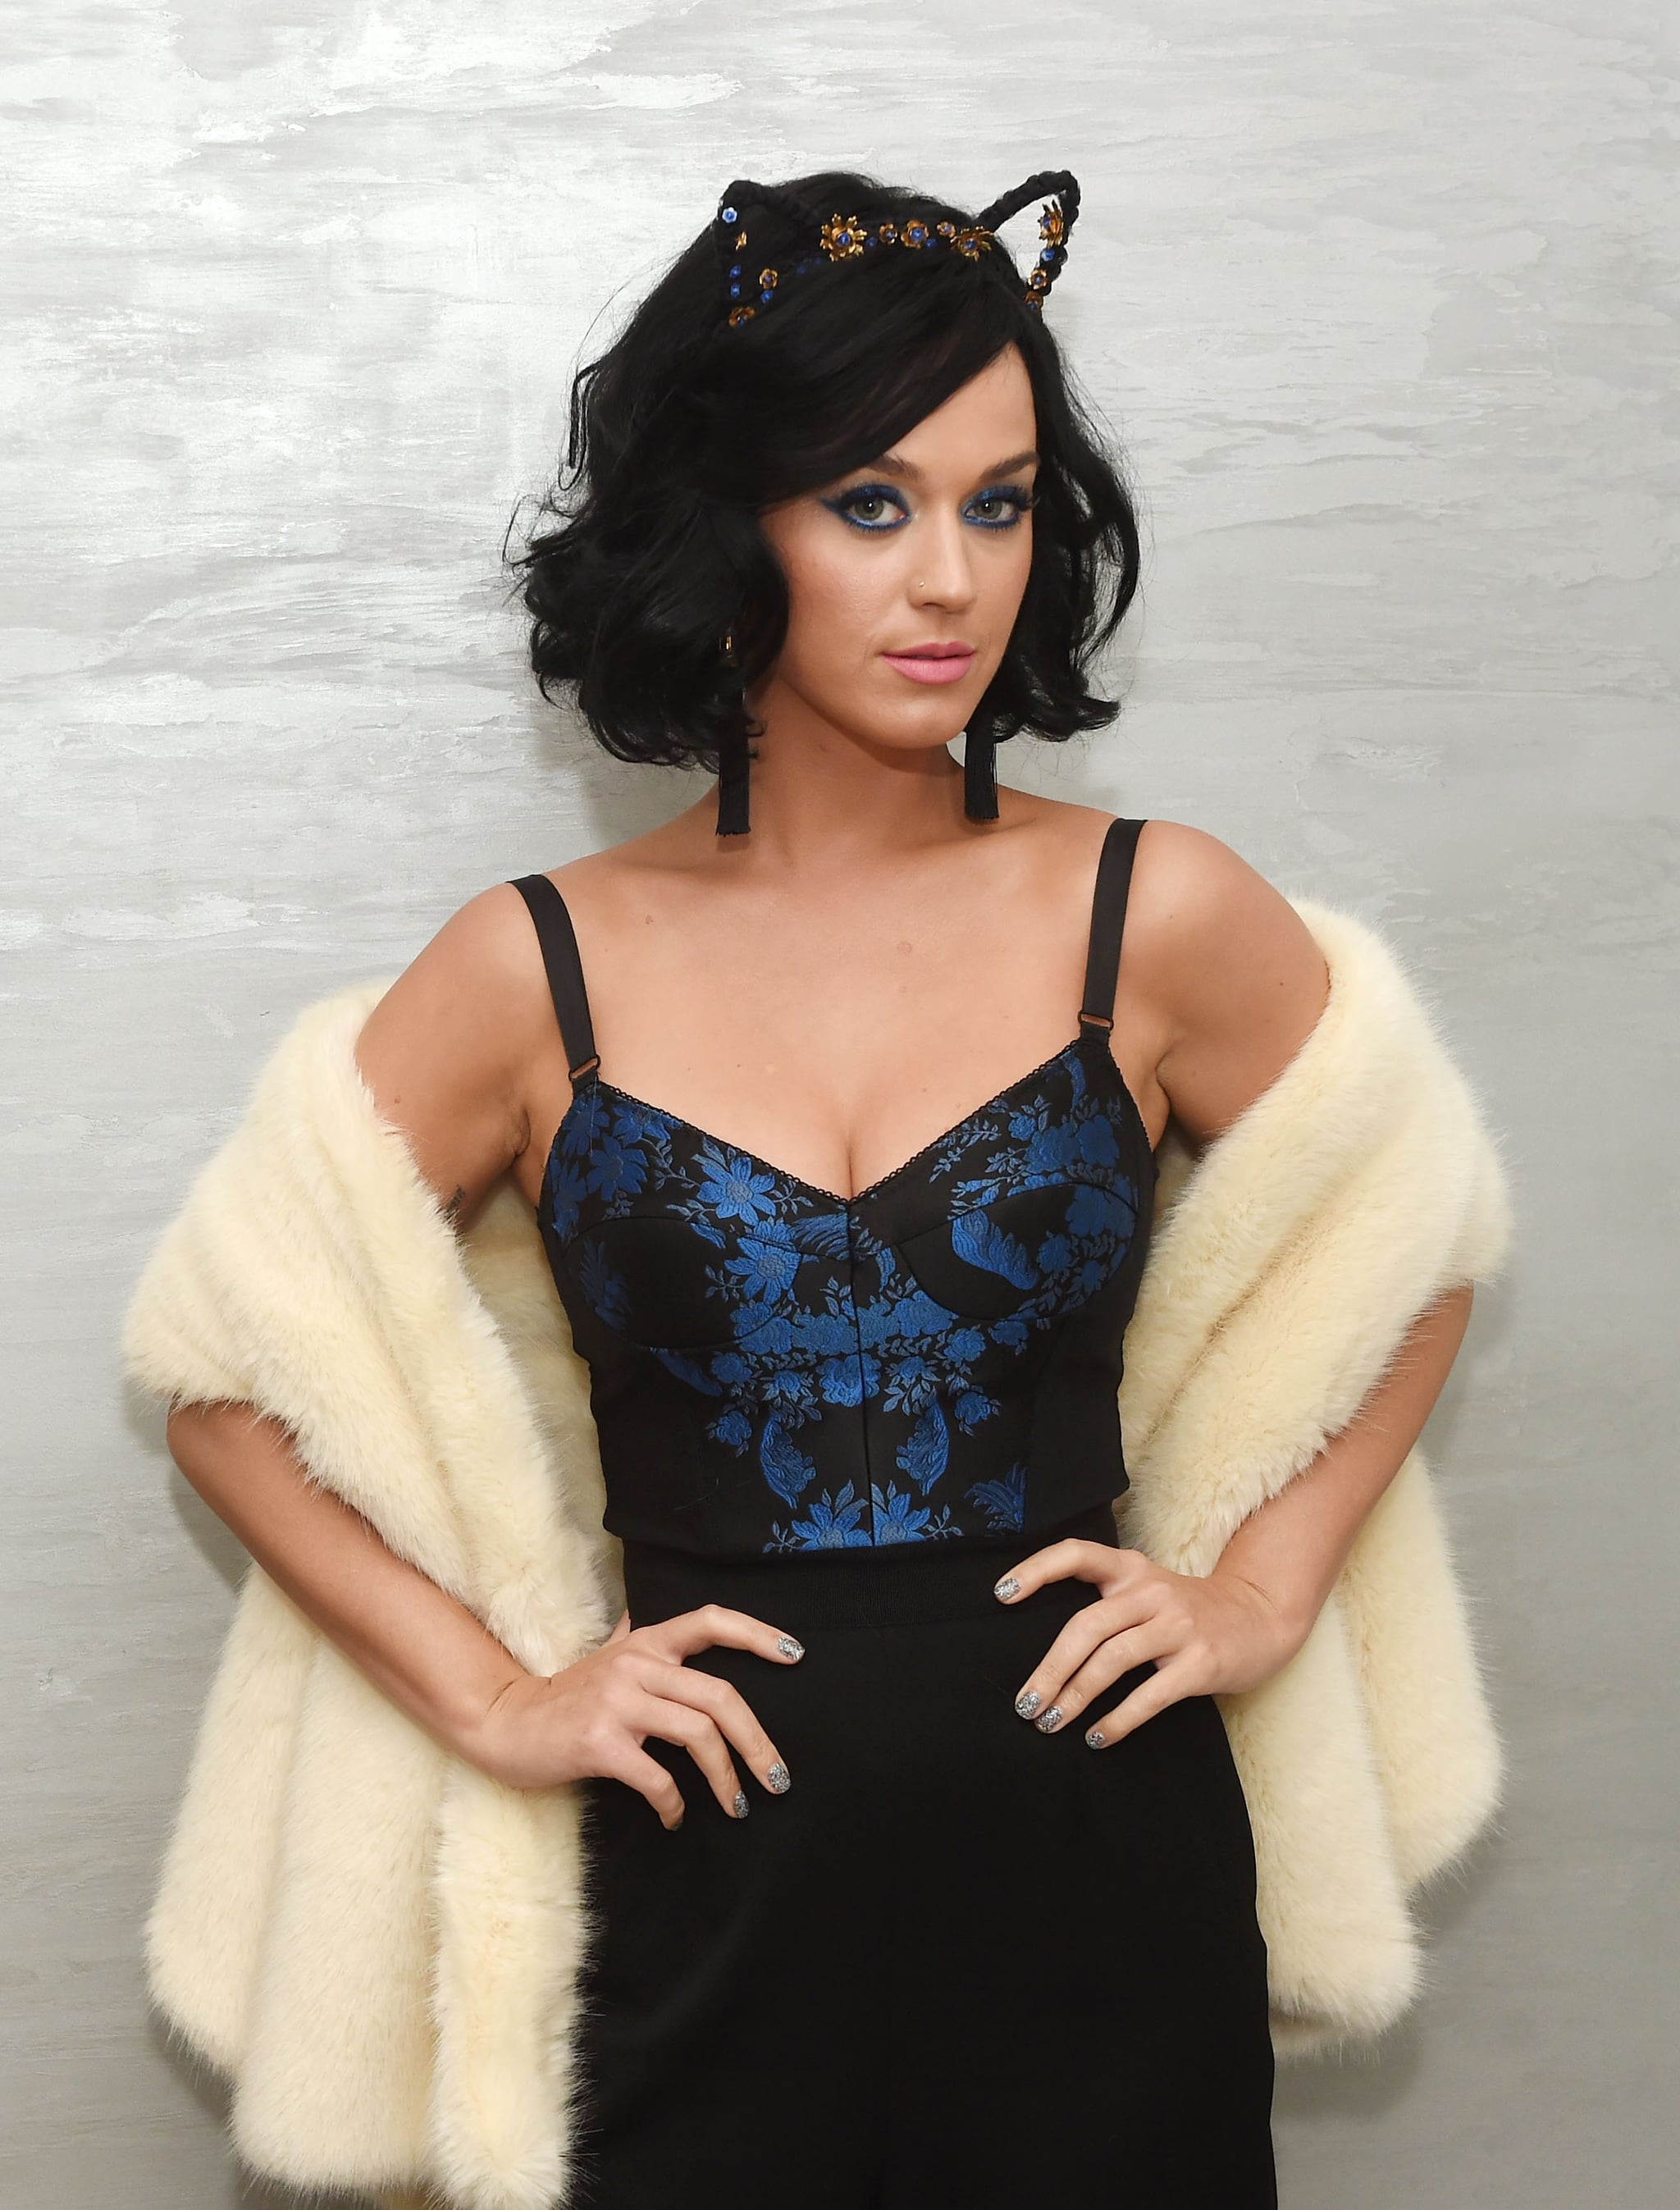 Katy Perry's New Album Is Coming, and It Could Be All About Taylor Swift